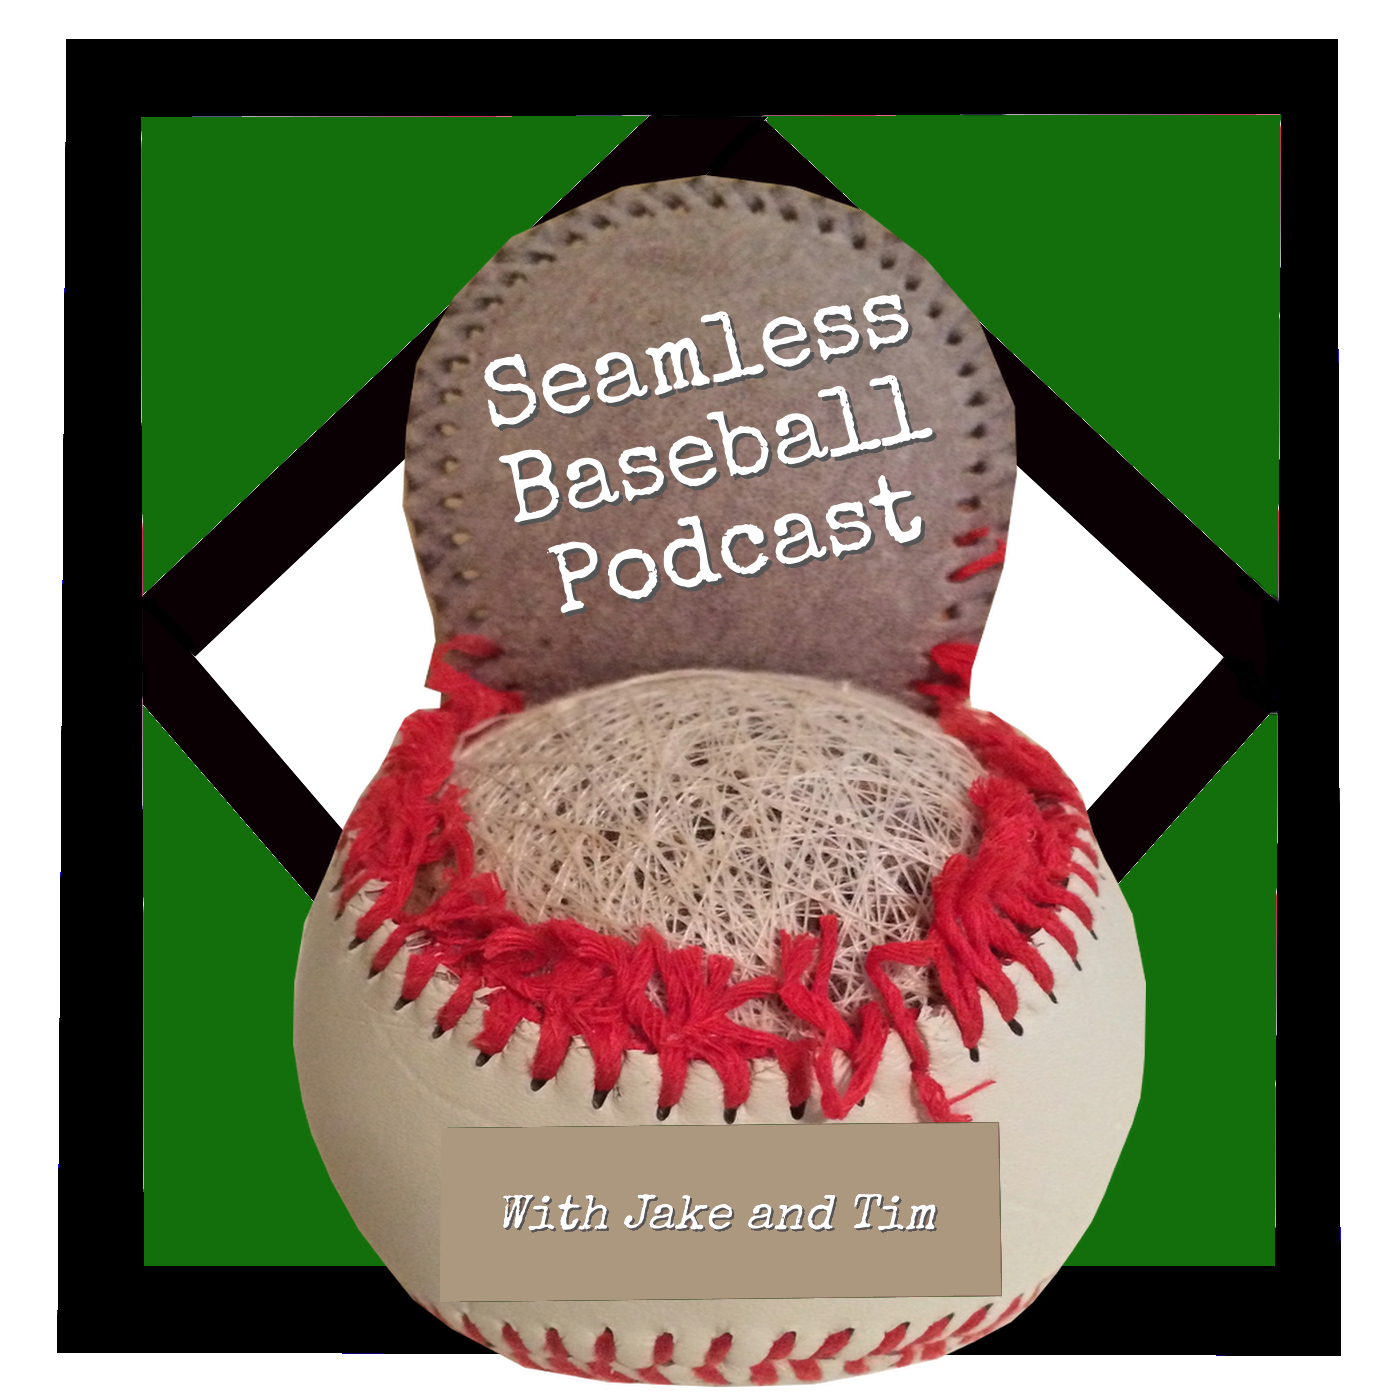 Seamless Baseball Podcast